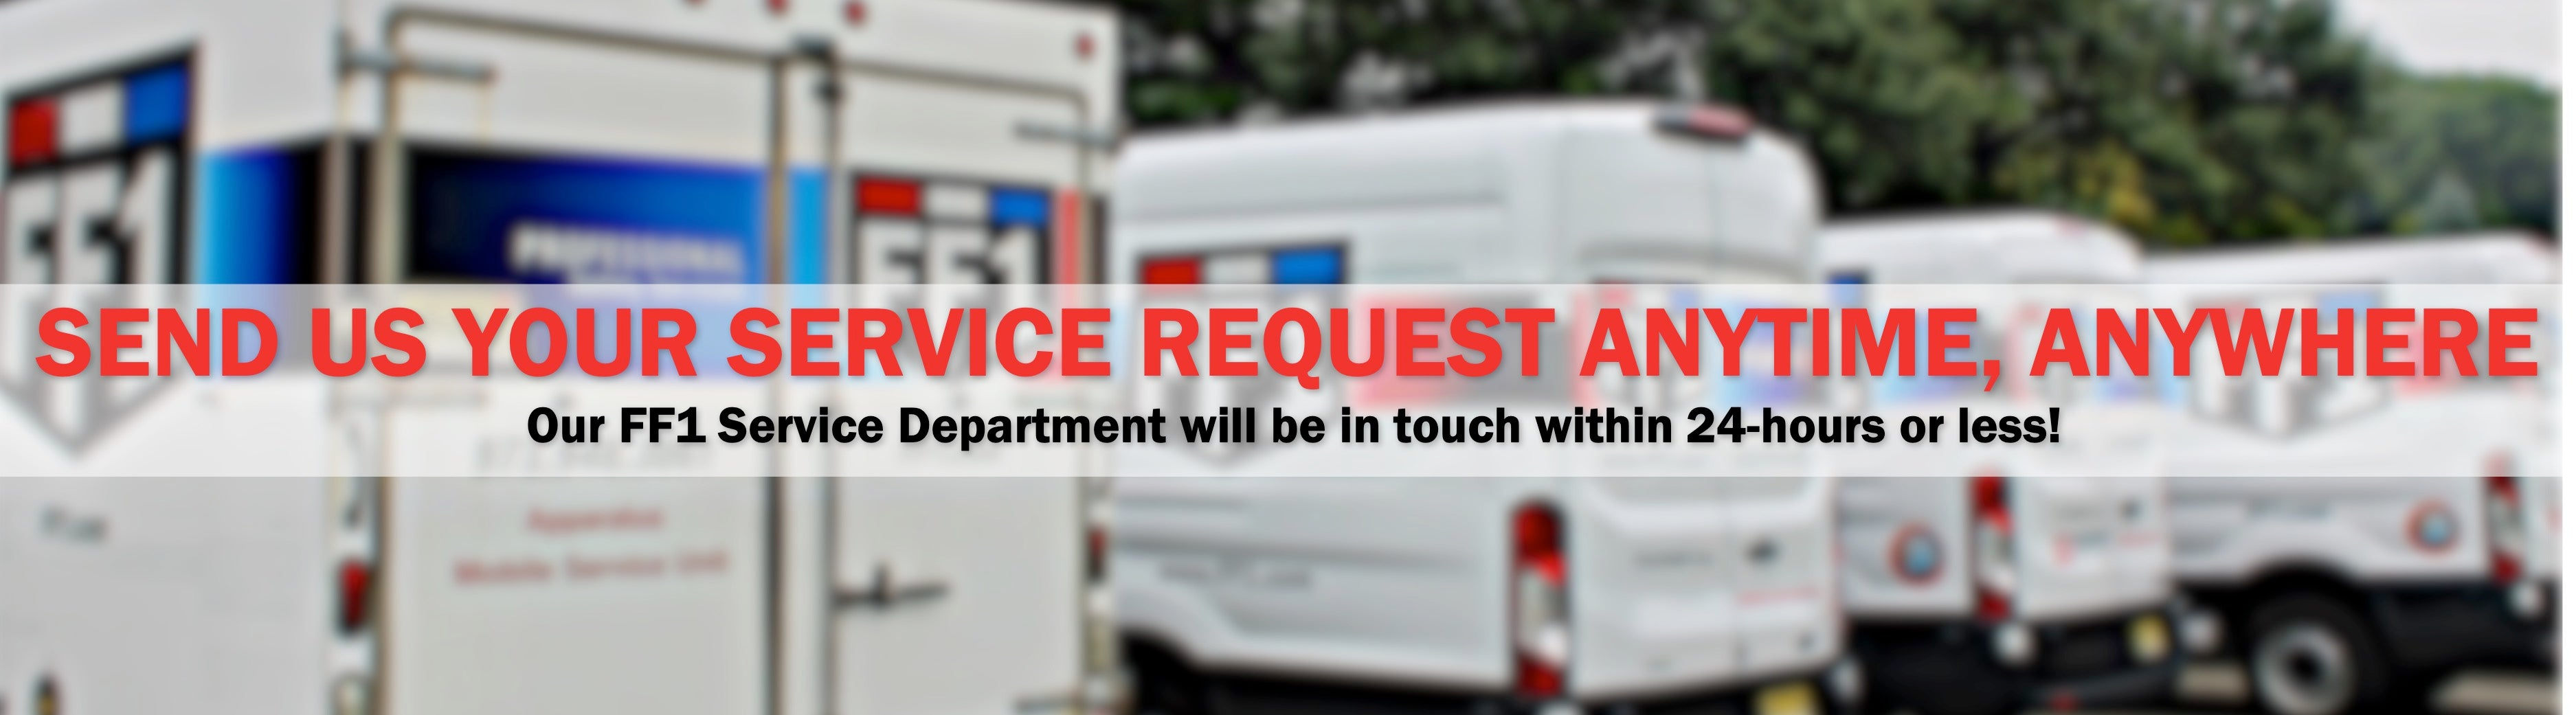 Send us your service request anytime, anywhere.